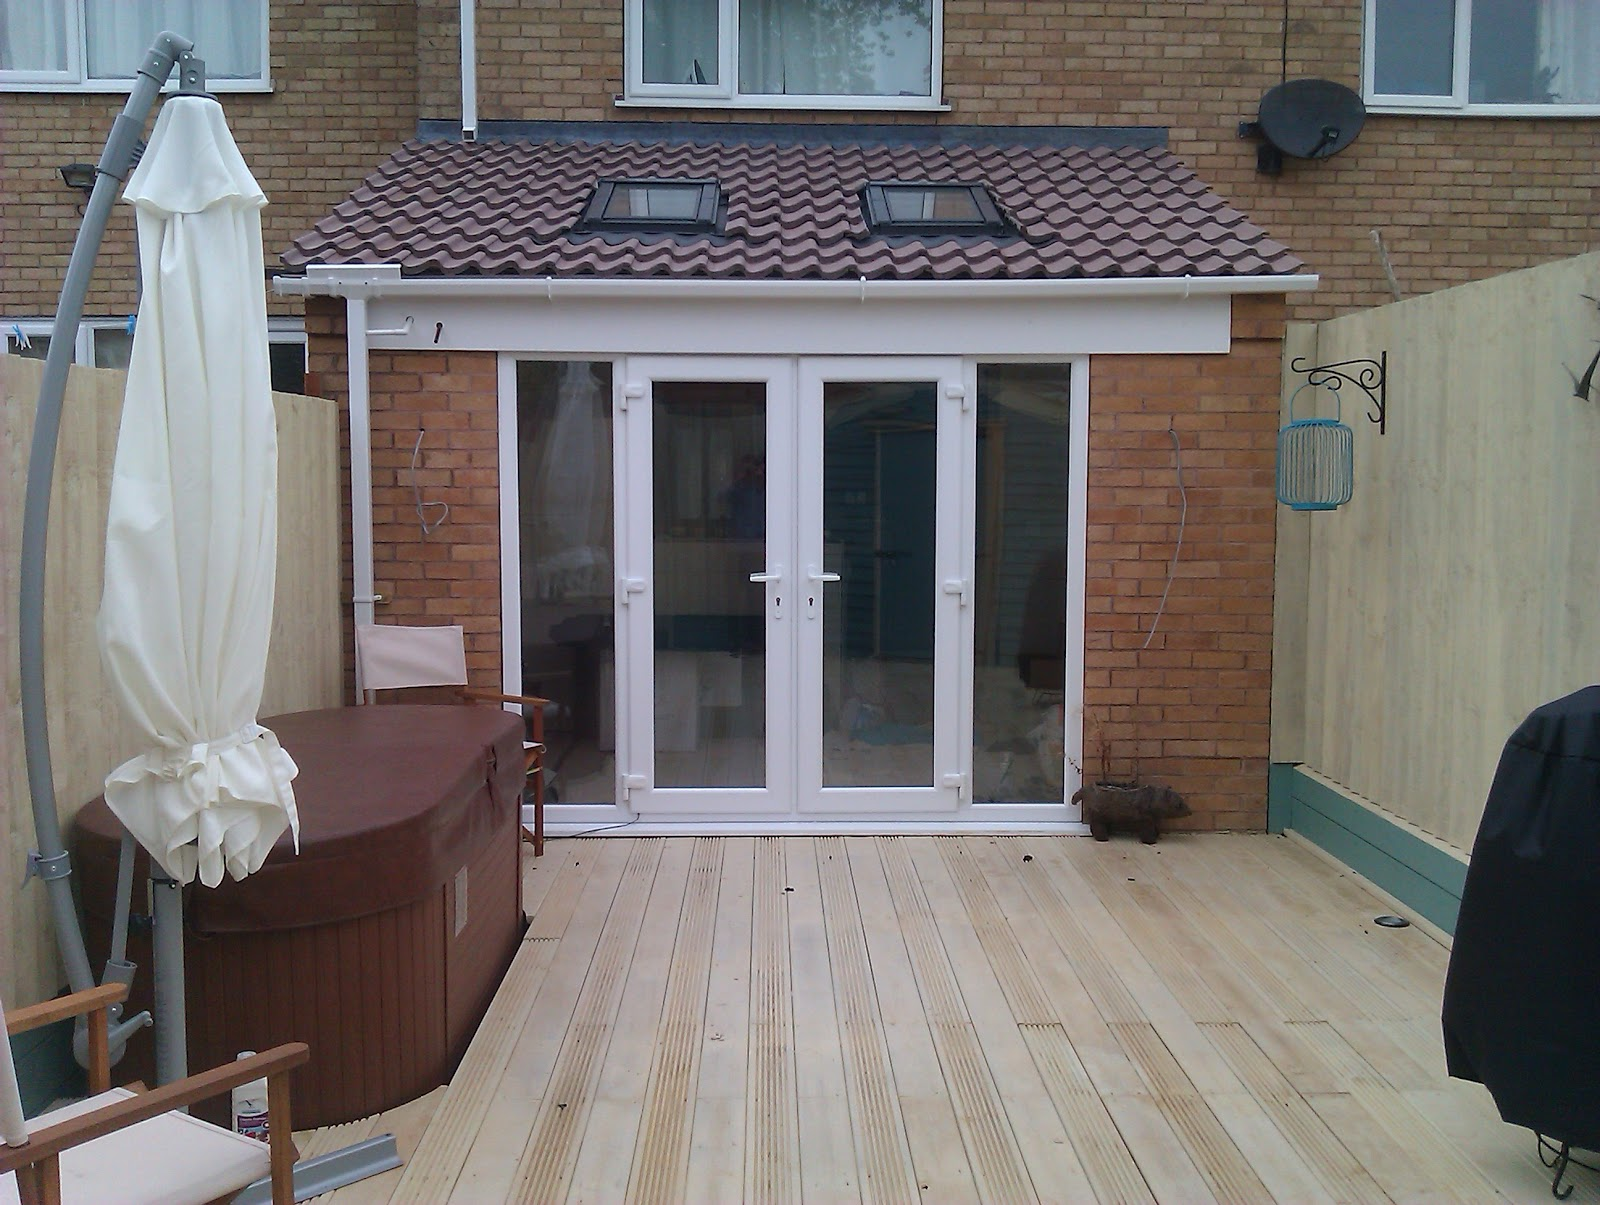 Ryan martin carpentry creating an extension in a small area - Small house extensions ideas ...